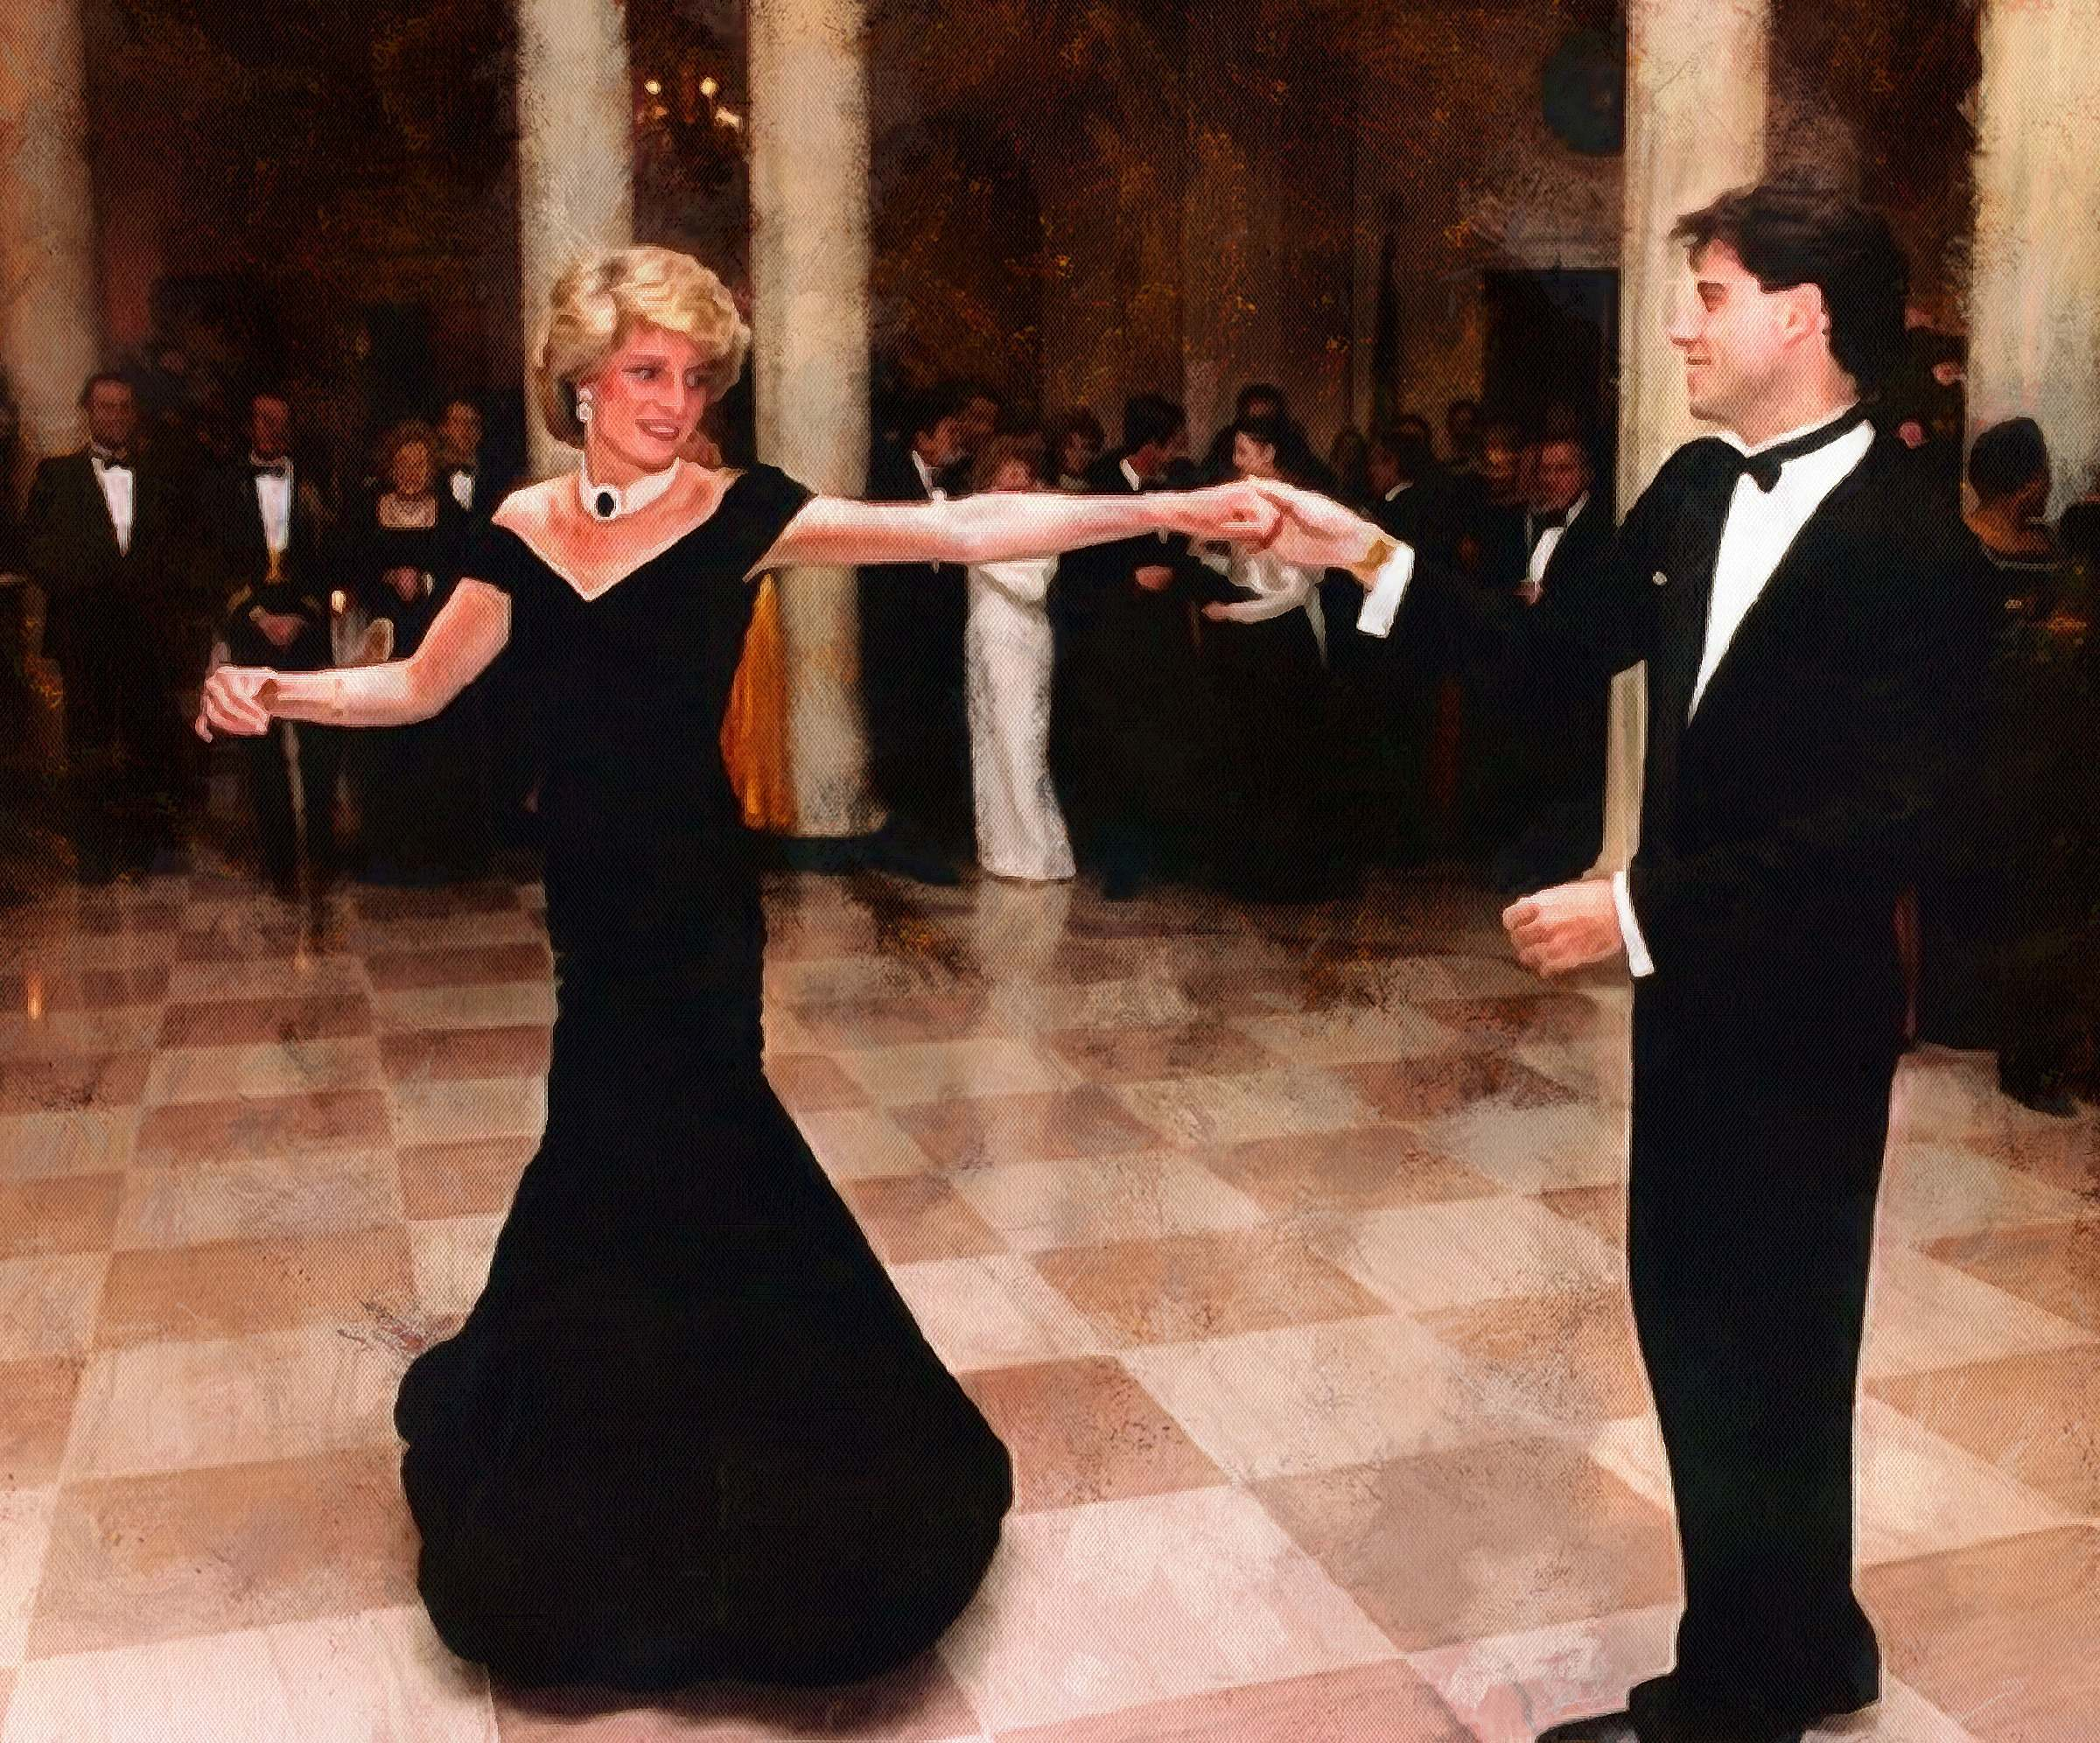 Facts about Princess Diana - Interesting Facts about Lady Di